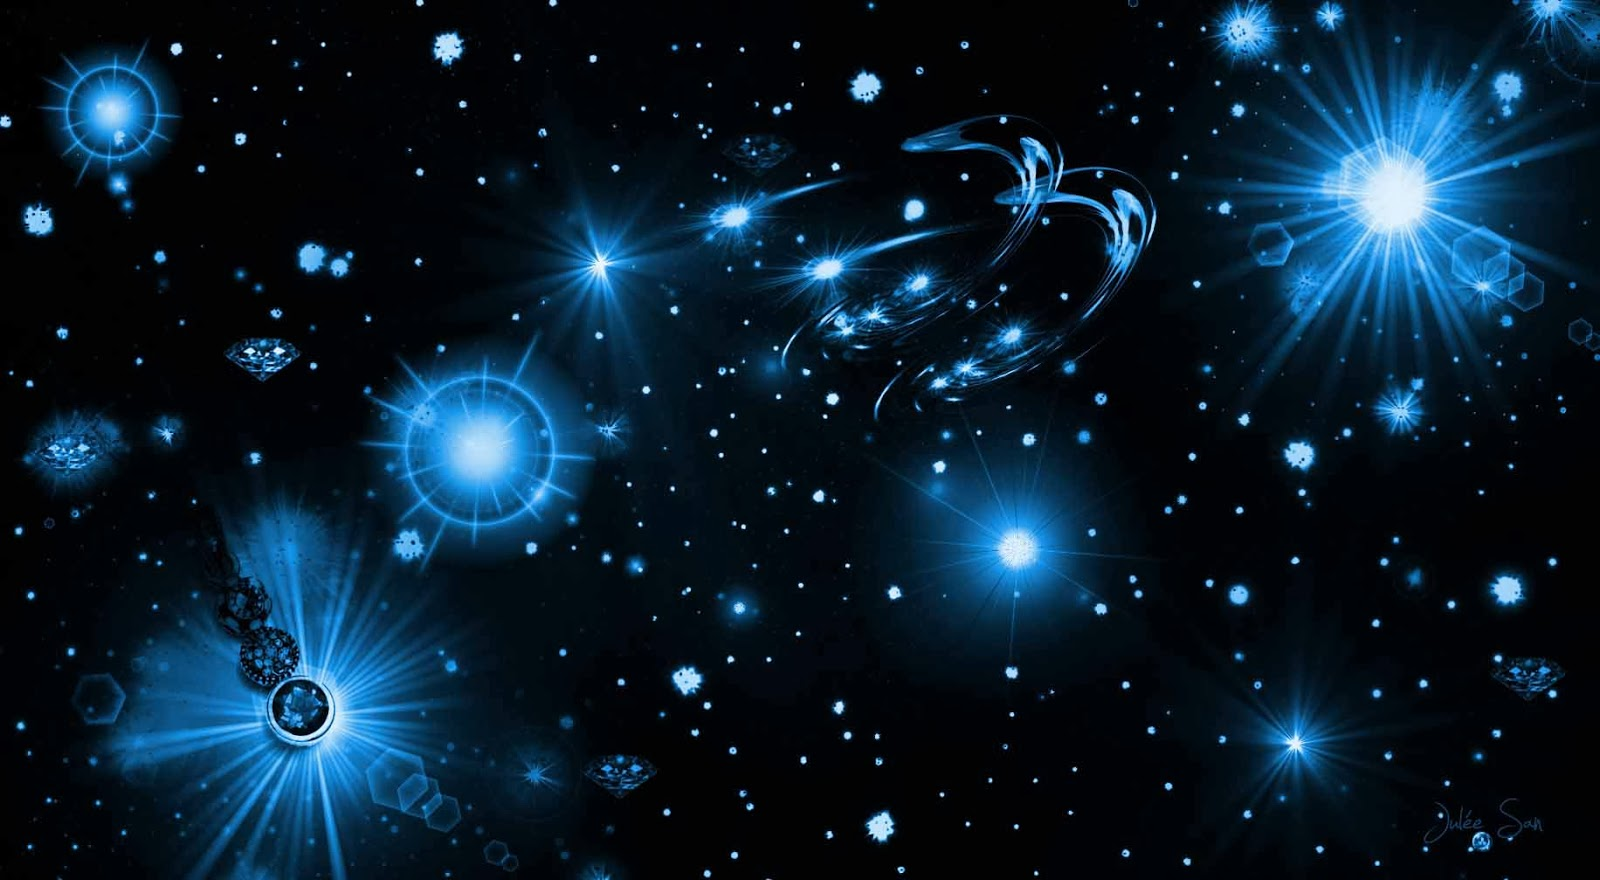 Hd Wallpapers Blog: Starry Night Wallpapers